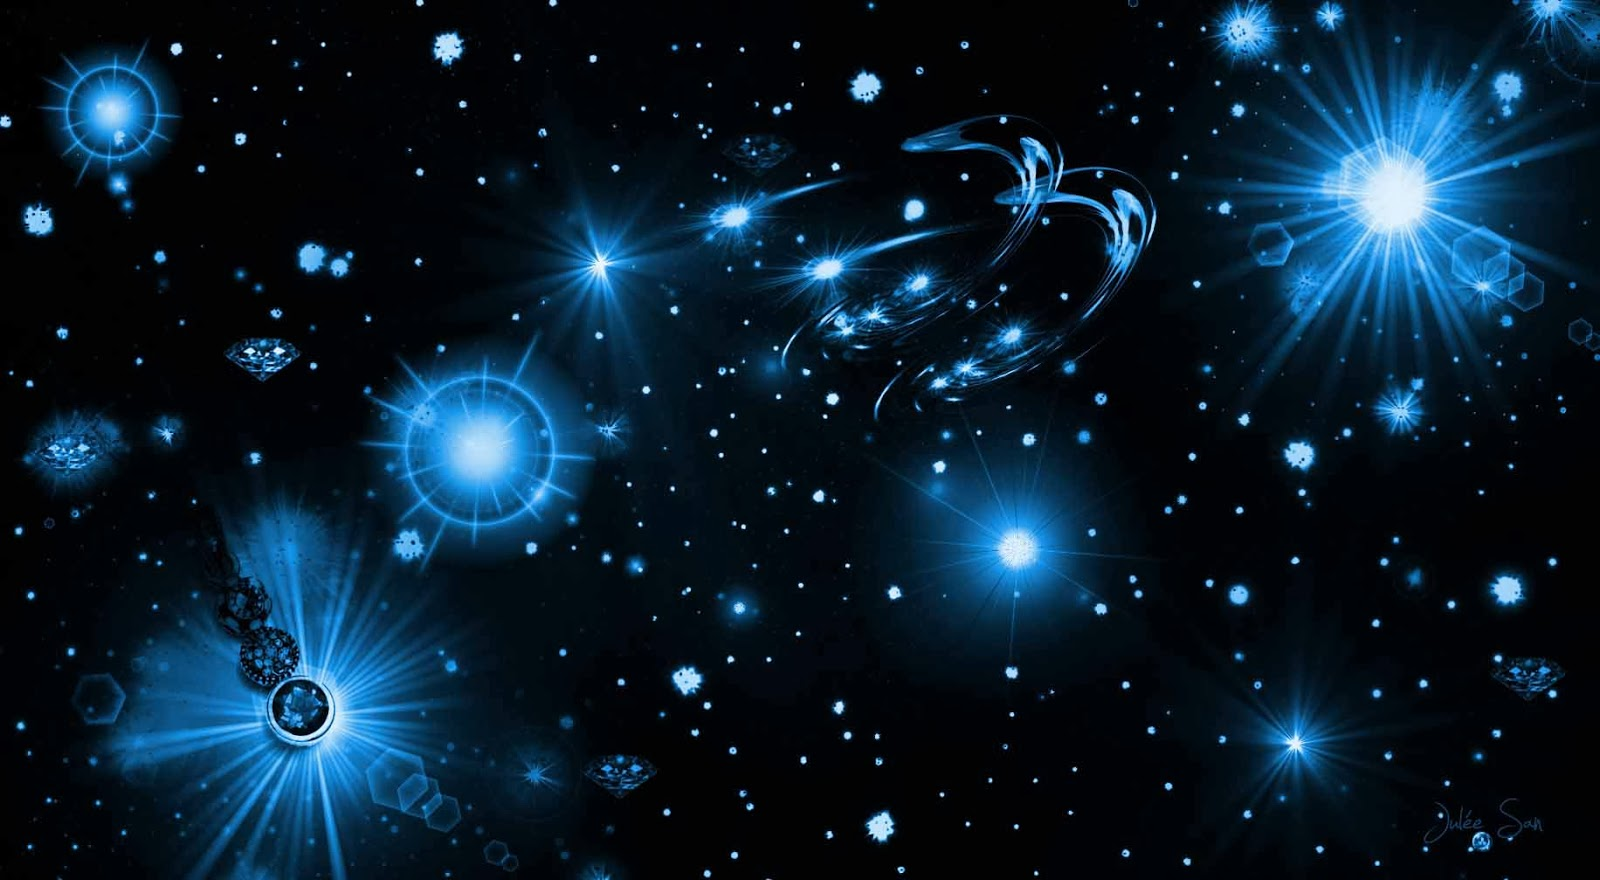 Hd Wallpapers Blog: Starry Night Wallpapers